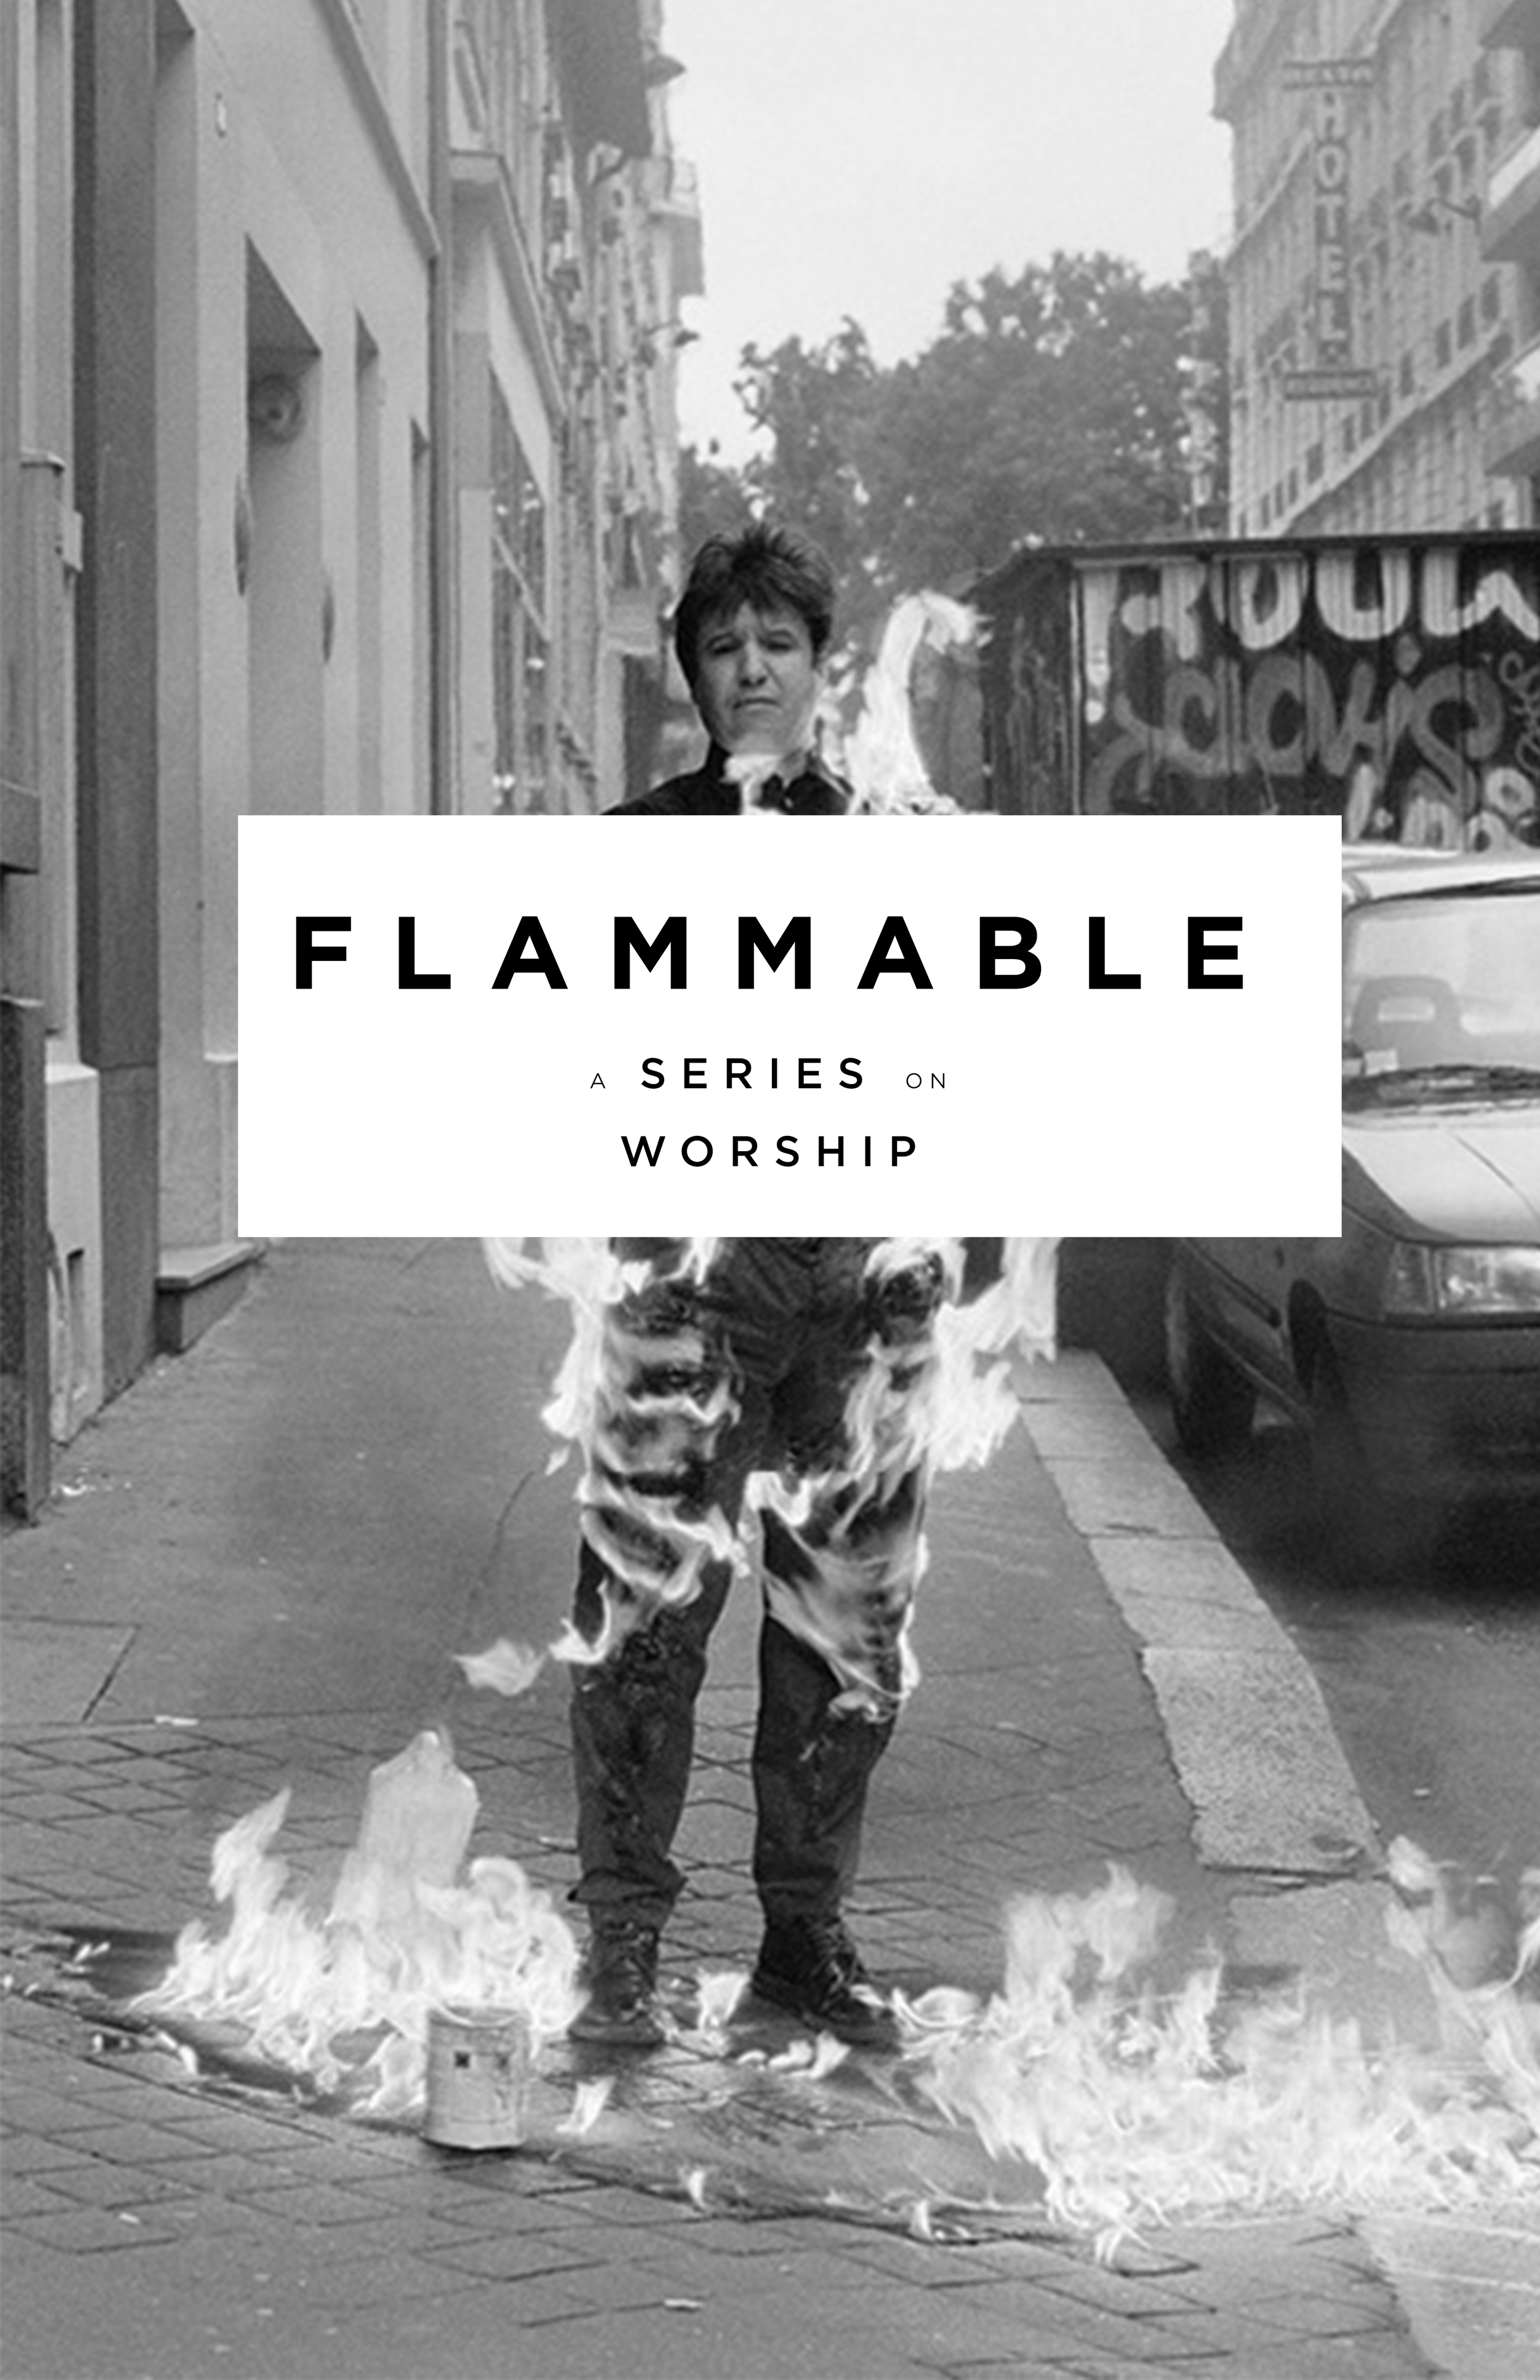 Flammable was a series on Worship for Pantego Bible Church.